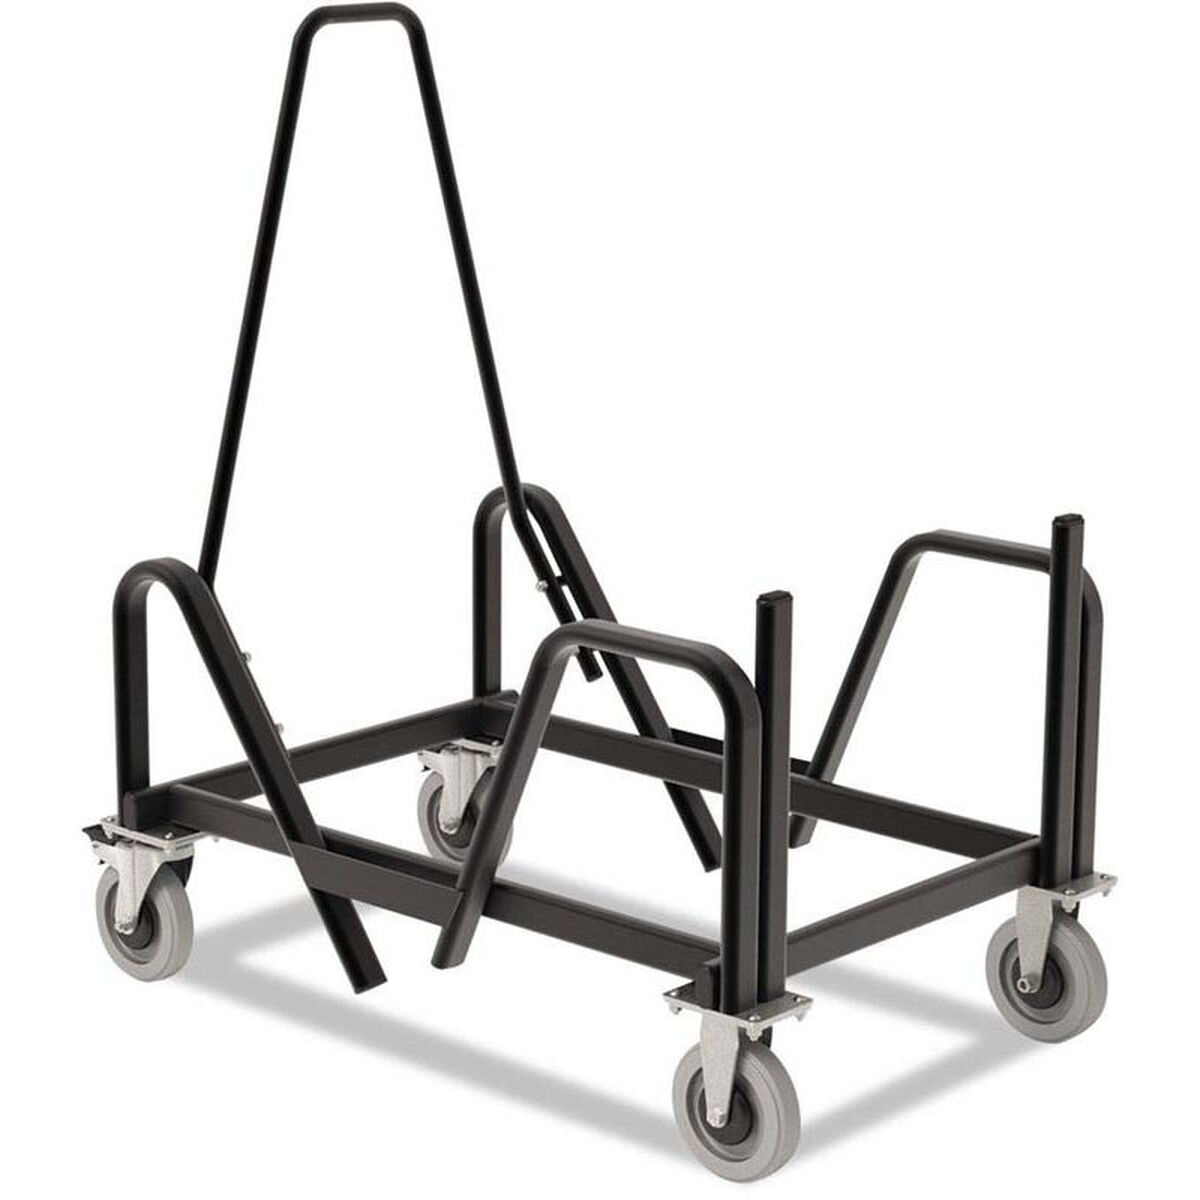 motivate stack chair cart honmscart stackchairs4less com